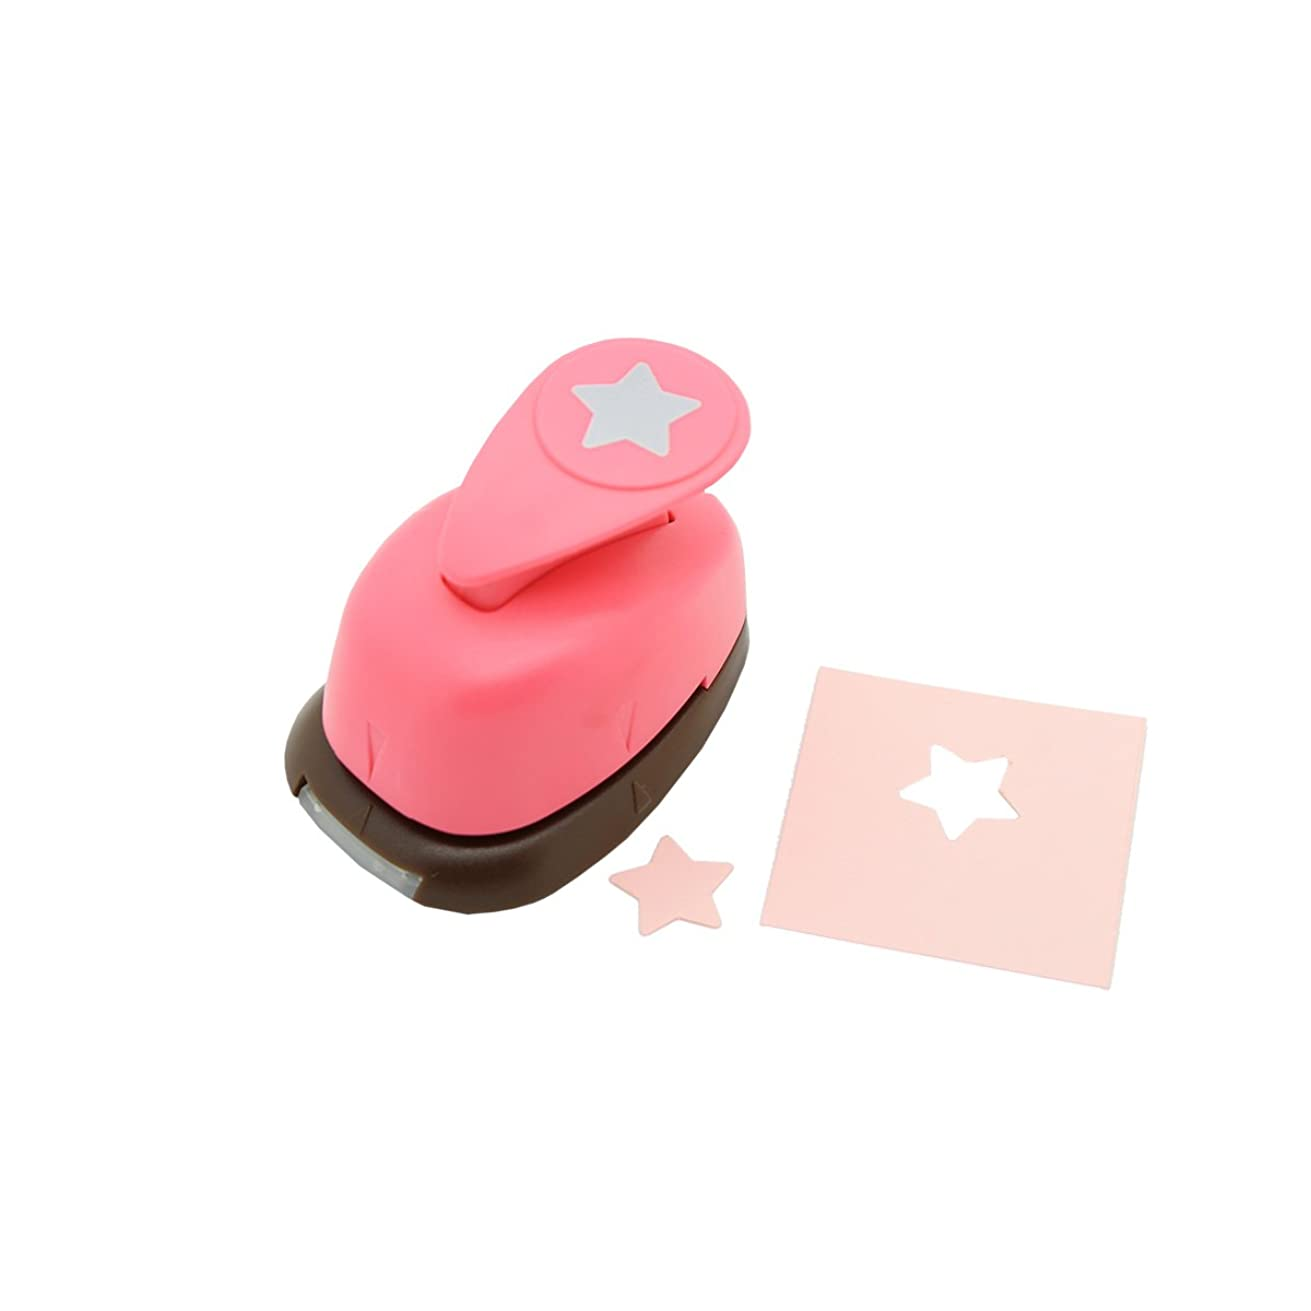 Bira 5/8 inch Star Shape,Christmas Punch, Lever Action Craft Punch for Paper Crafting Scrapbooking